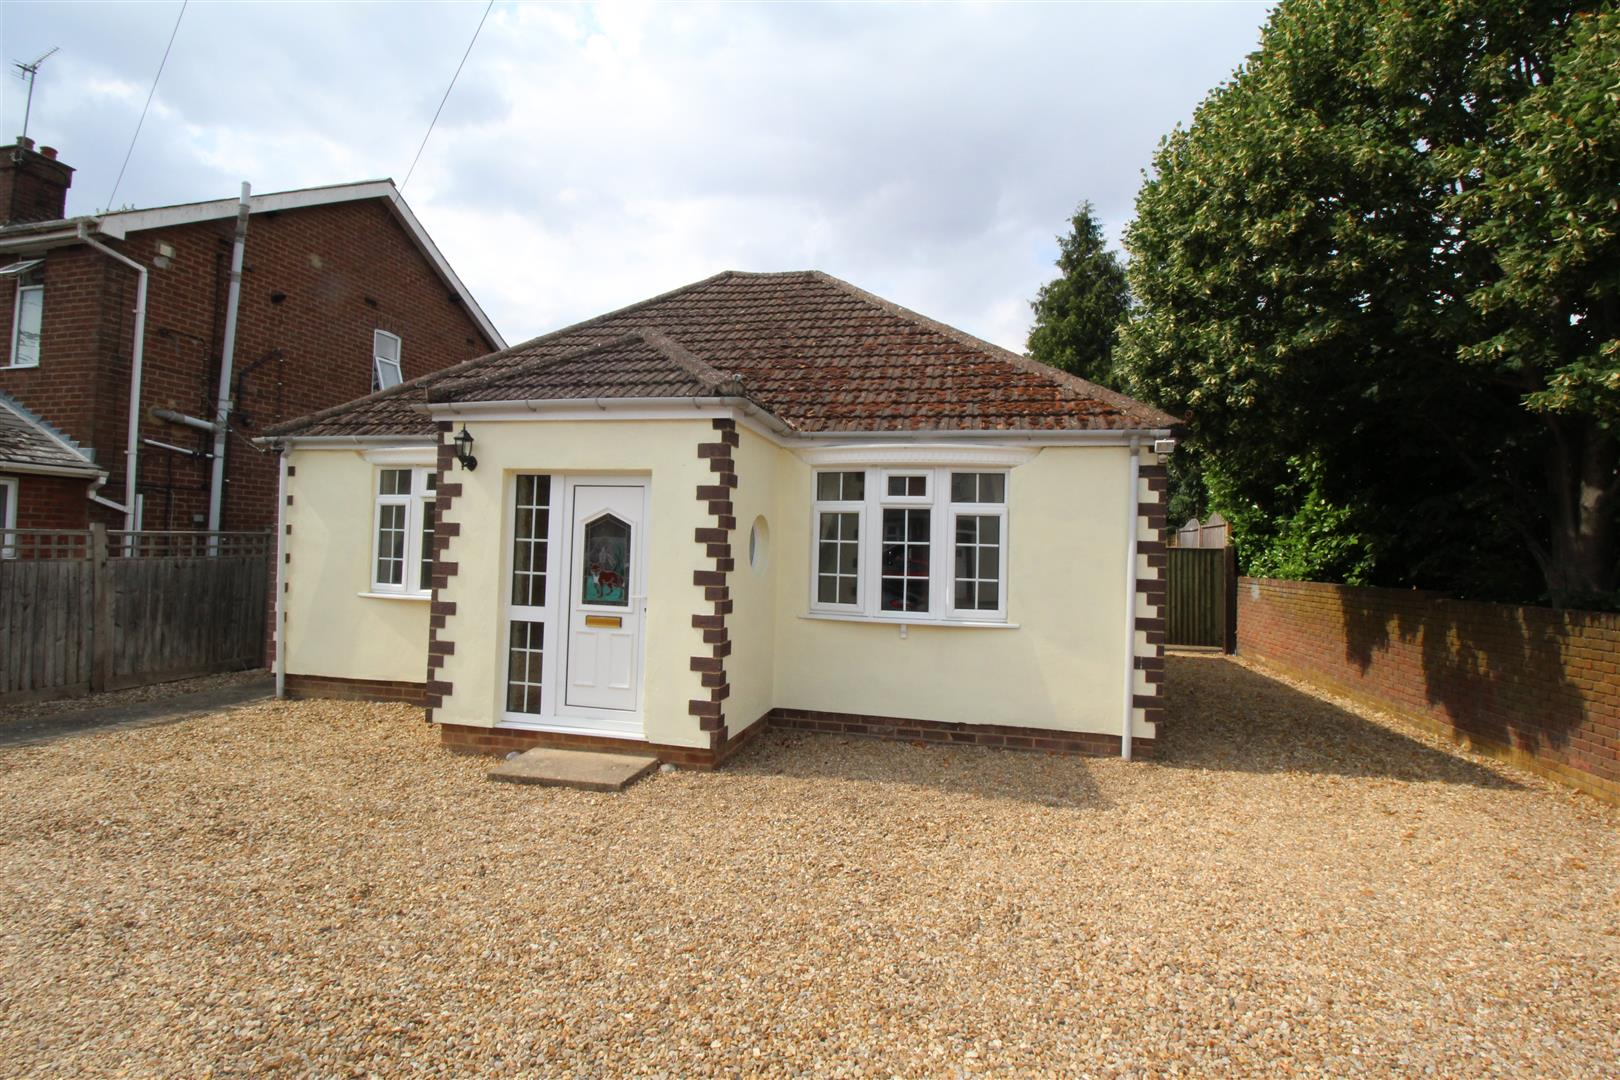 This excellent 4 bedroom detached bungalow comprises: Entrance hall, lounge, kitchen / breakfast room with white goods, utility room, conservatory, master bedroom with an en-suite shower room, the 3 further bedrooms and a family bathroom. There is ample